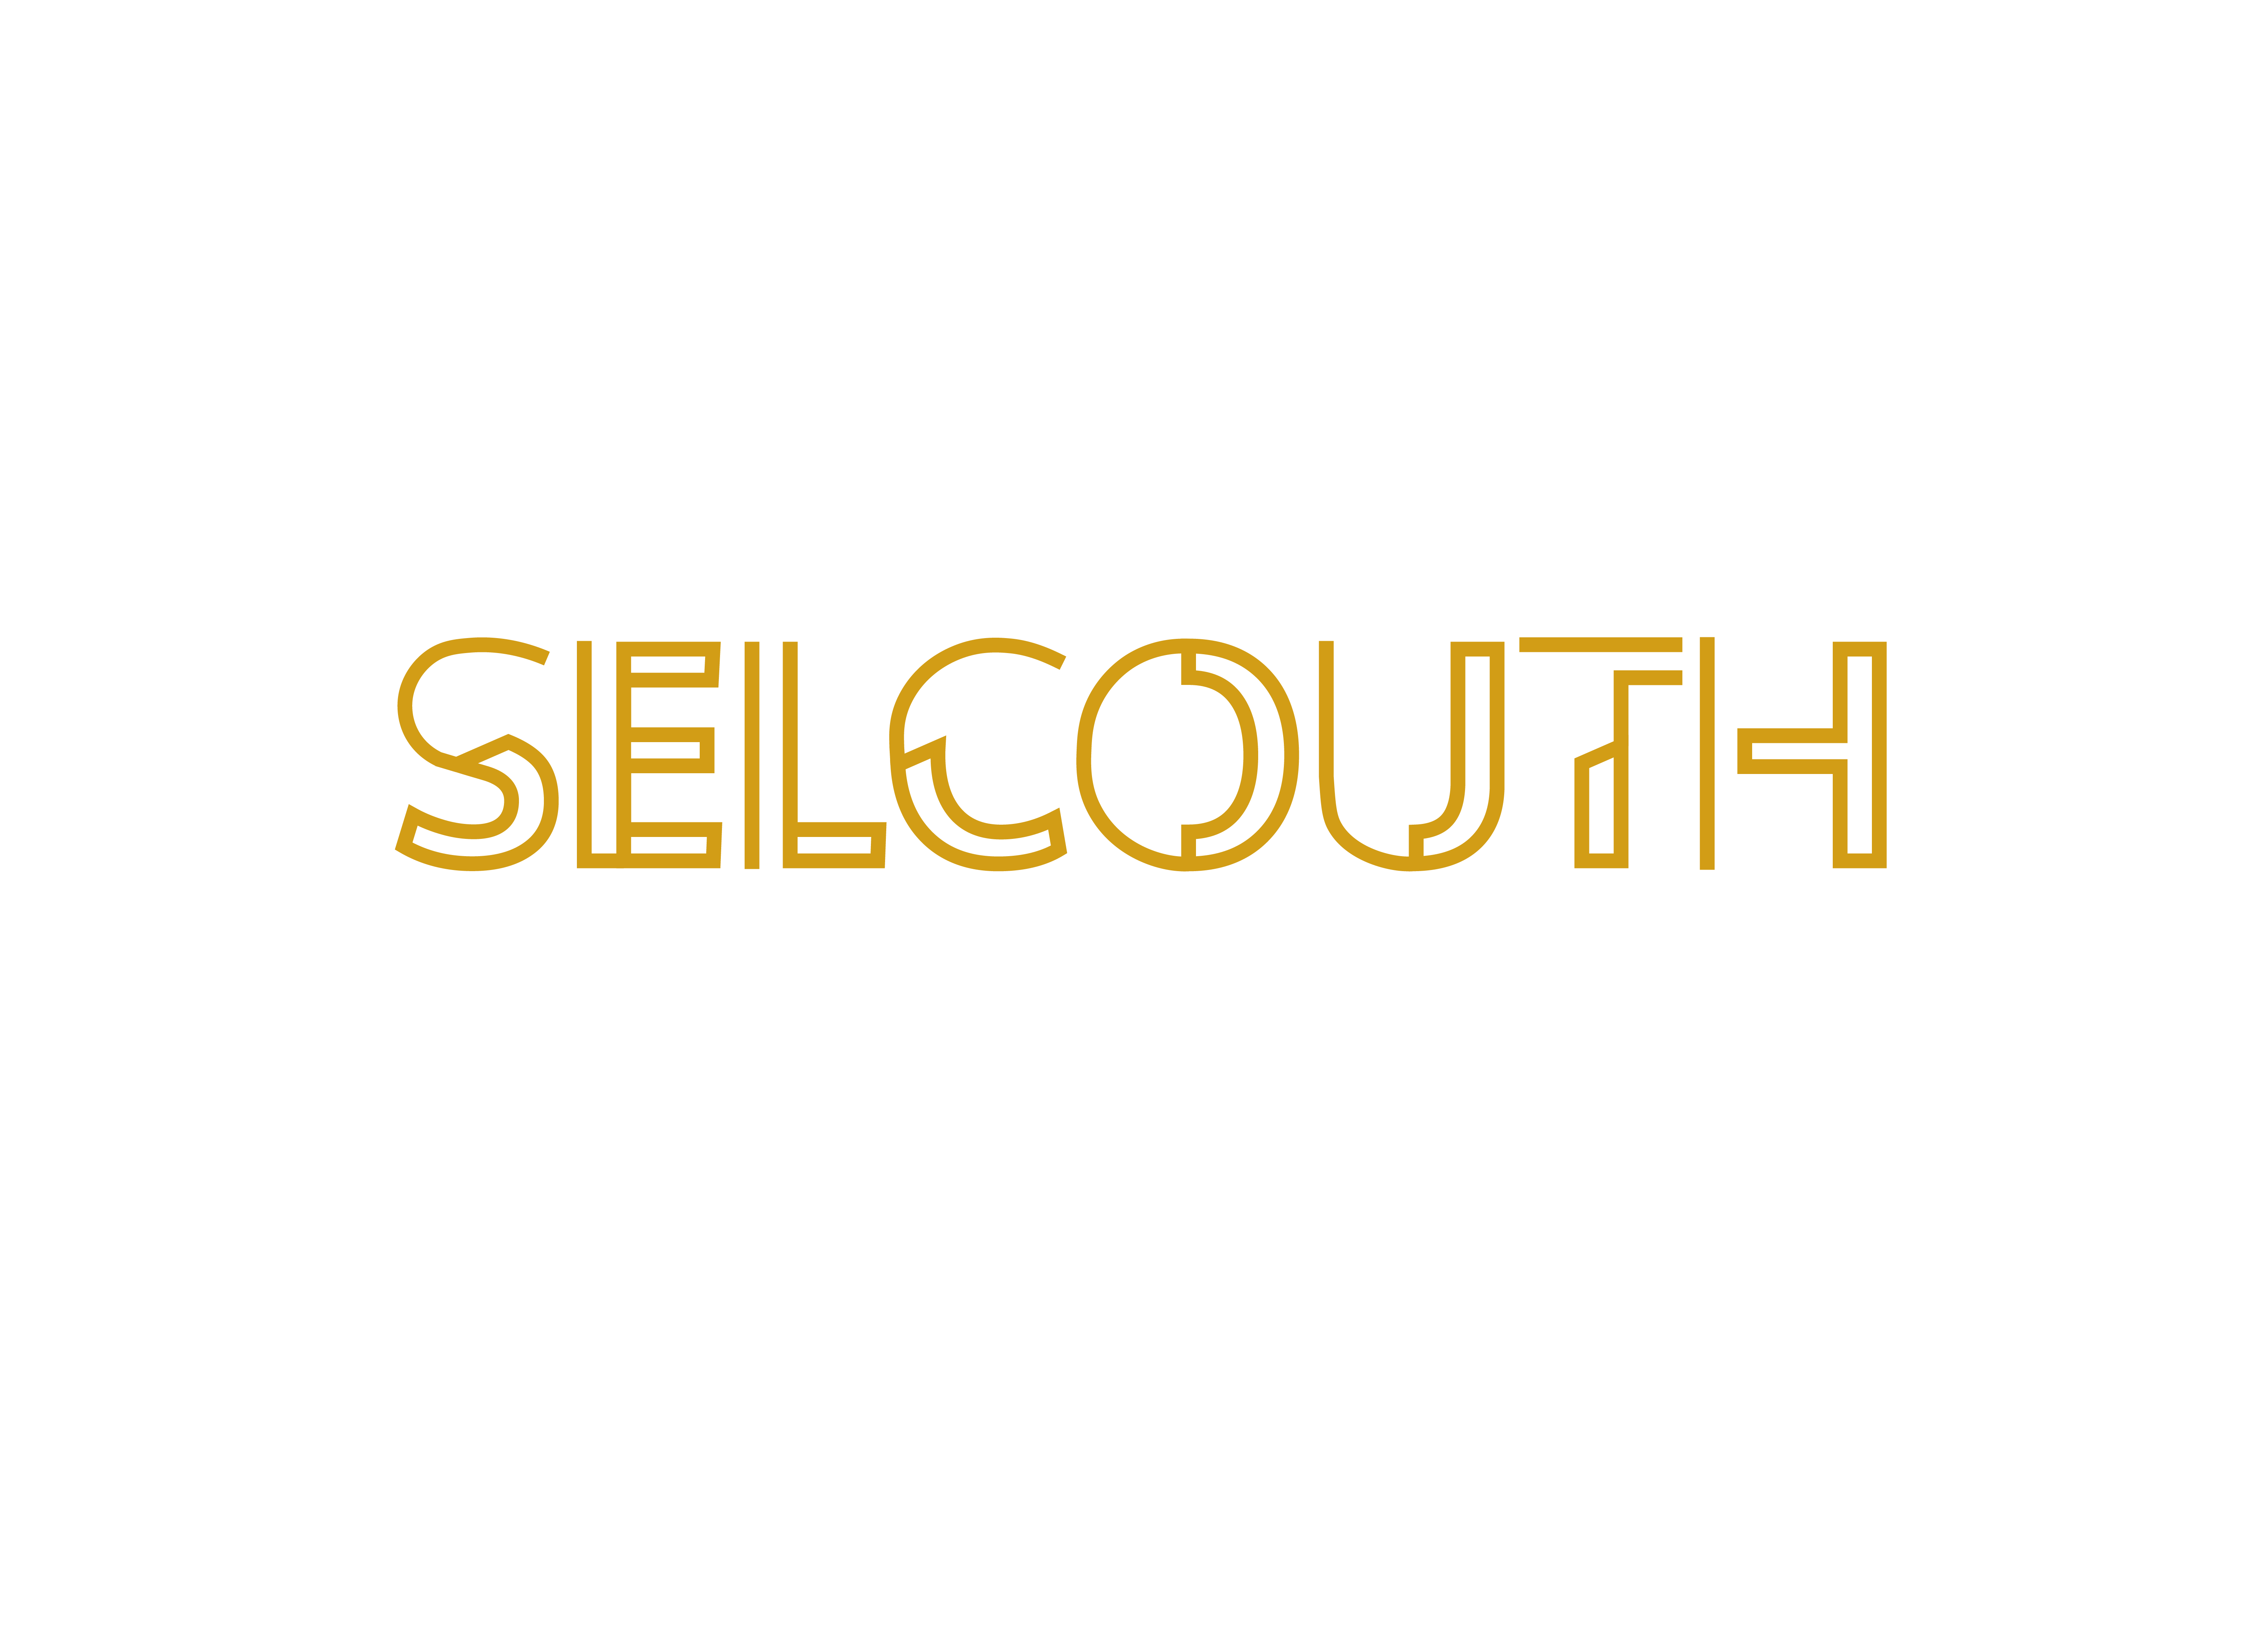 Selcouth type 1 -01